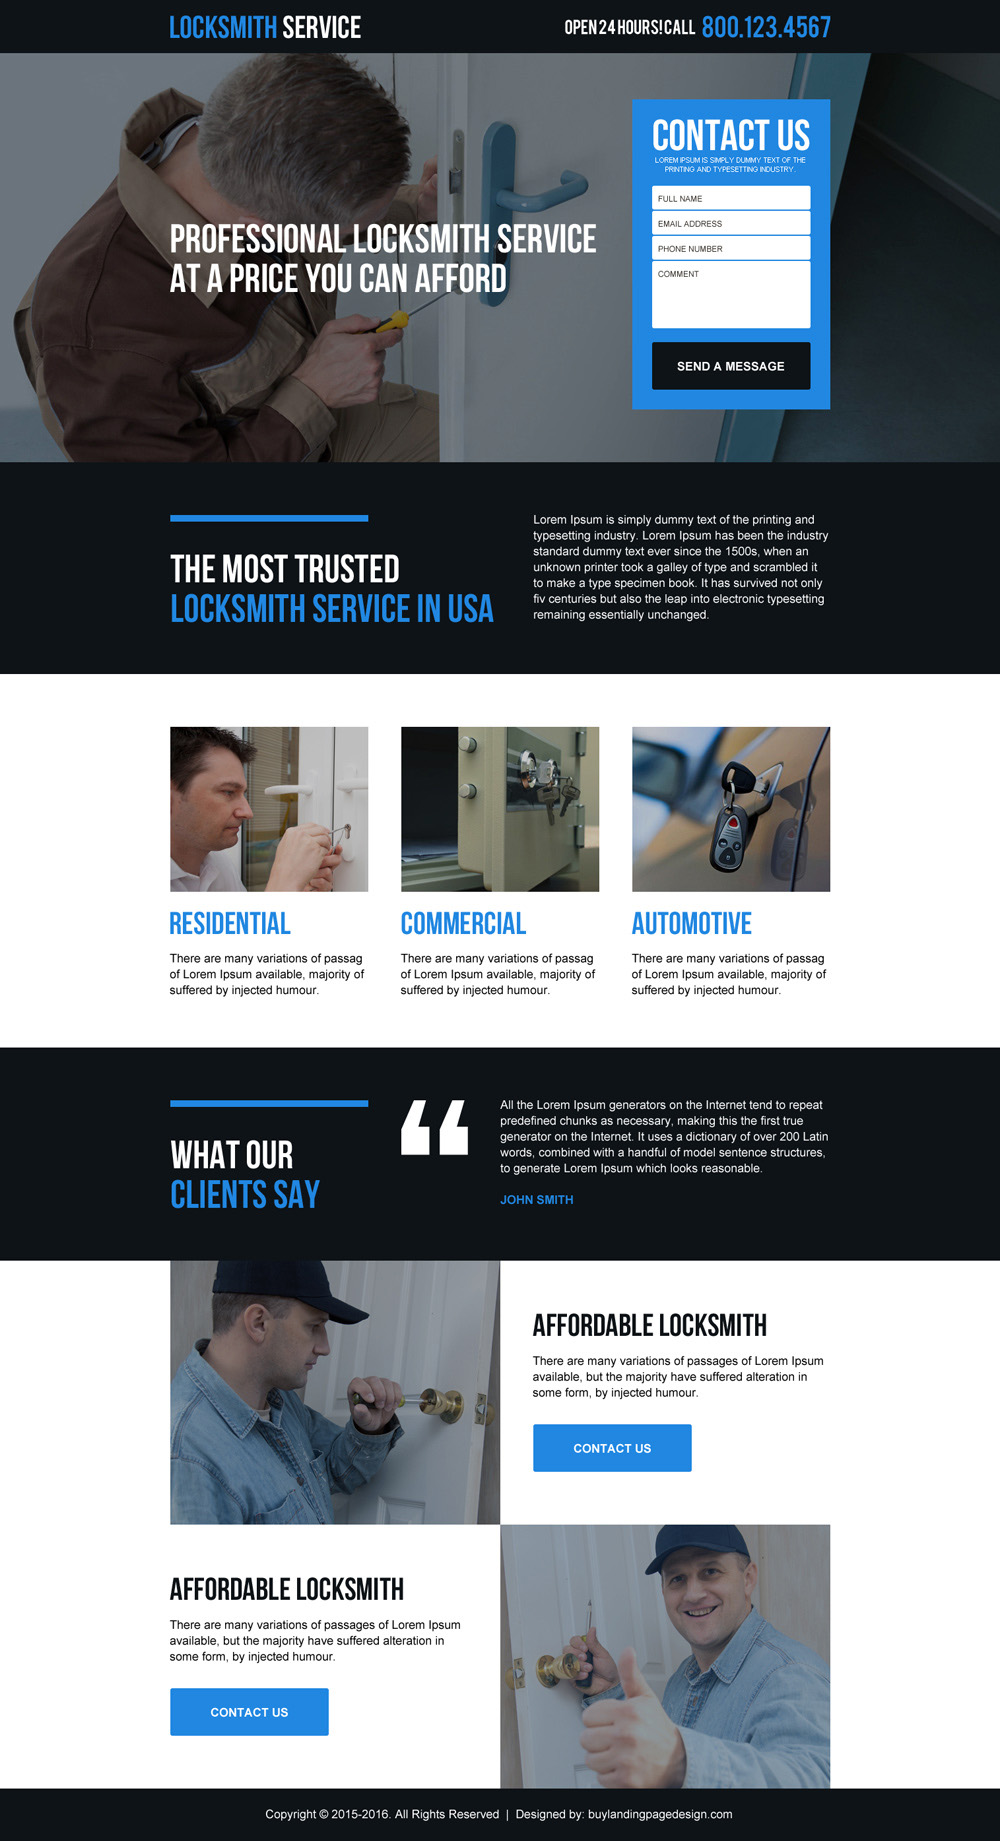 professional-locksmith-service-on-affordable-price-in-usa-lead-gen-landing-page-004